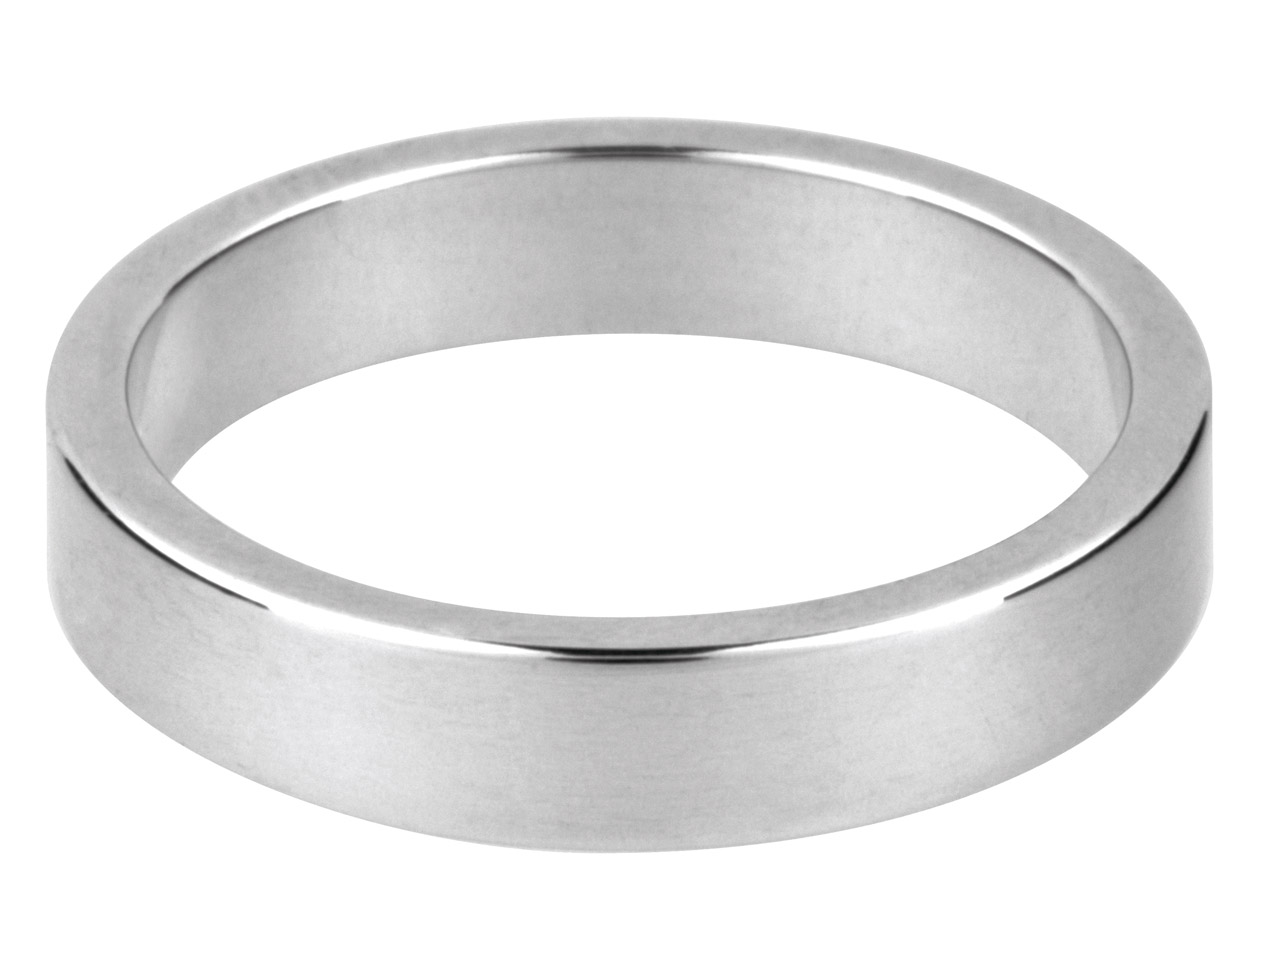 18ct White Flat Wedding Ring 5.0mm X 6.7gms Medium Weight Hallmarked  Wall Thickness 1.15mm